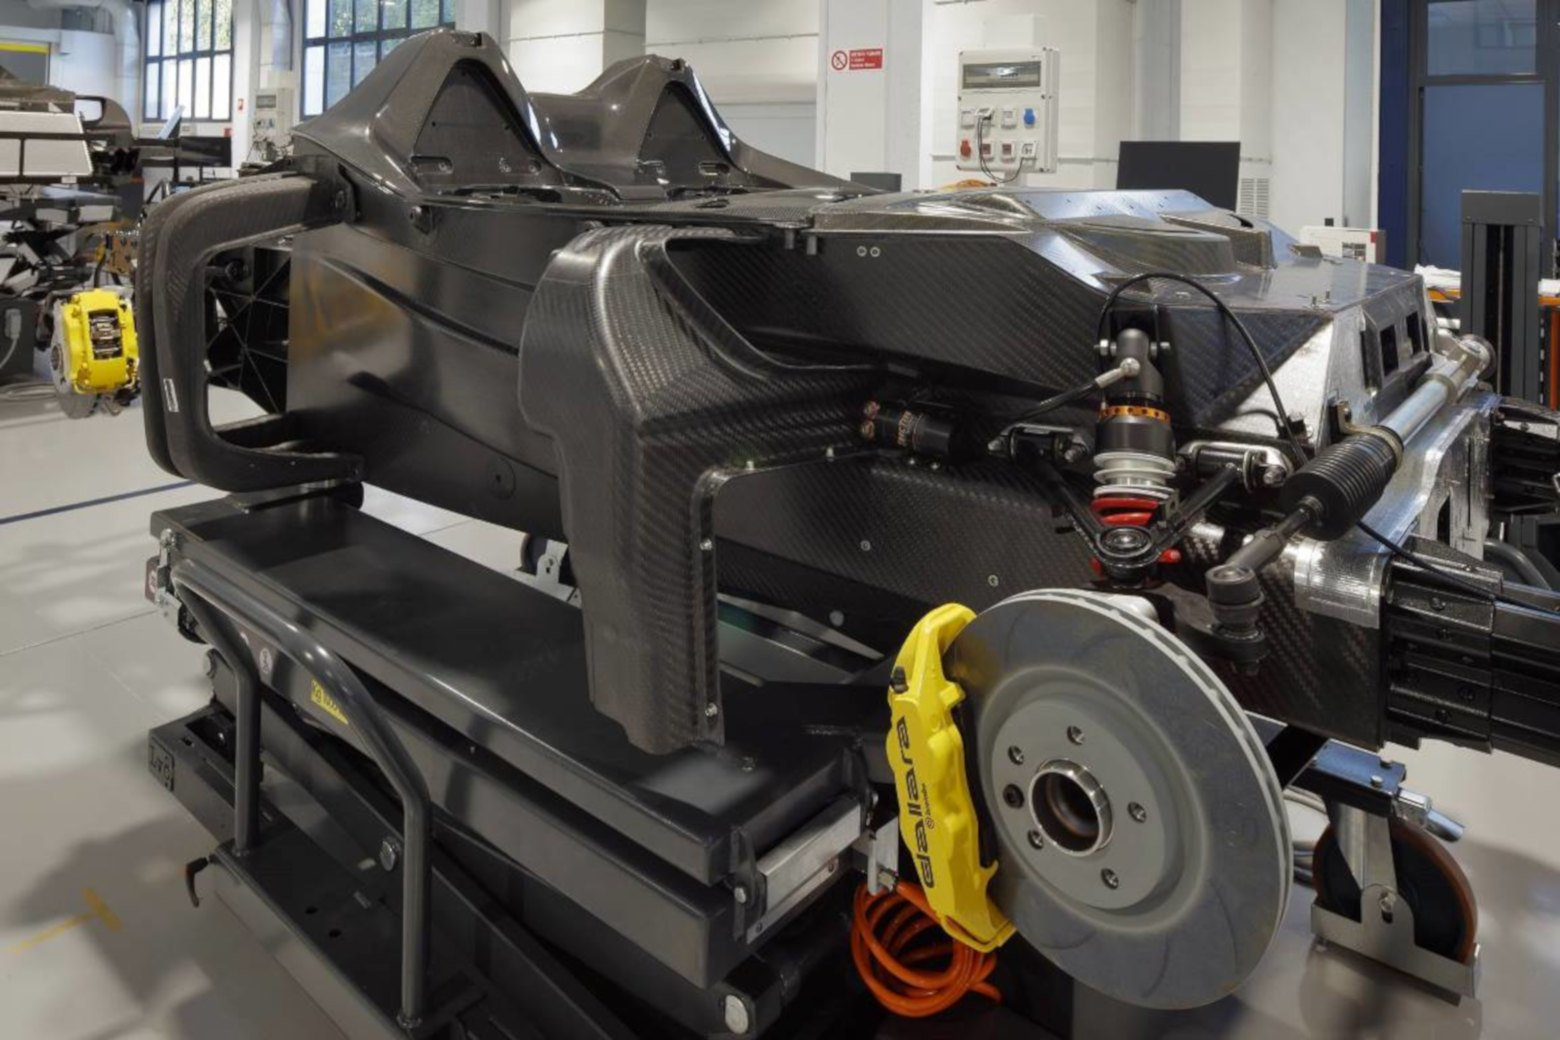 Dallara Stradale carbon fibre chassis and front suspension.